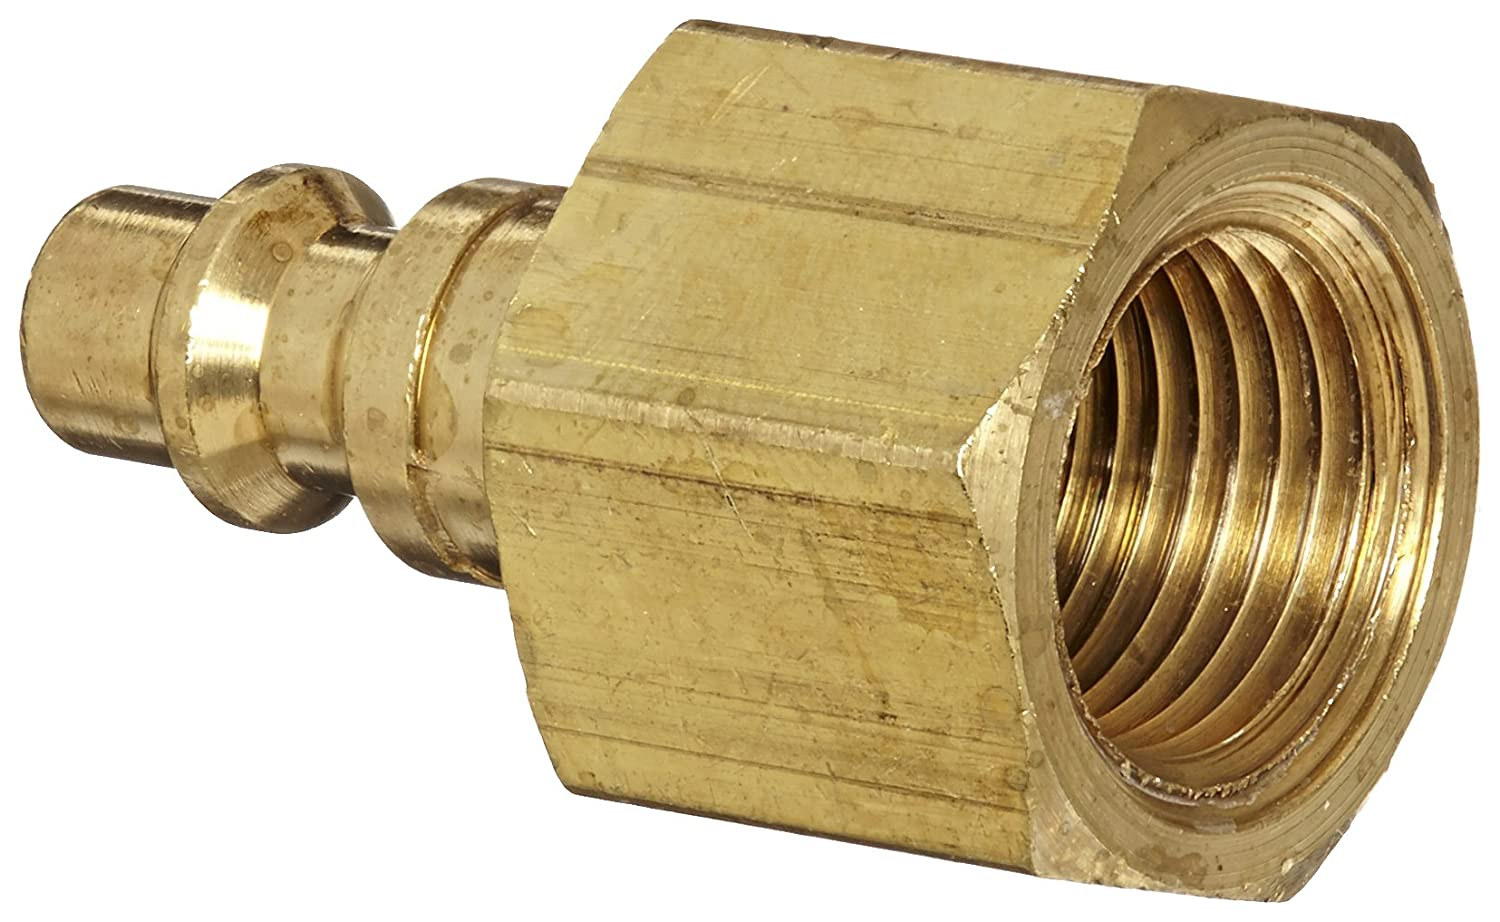 Dixon Branded Free shipping anywhere in the nation goods Valve and Coupling DCP2023B Chief Int Industrial Air Brass